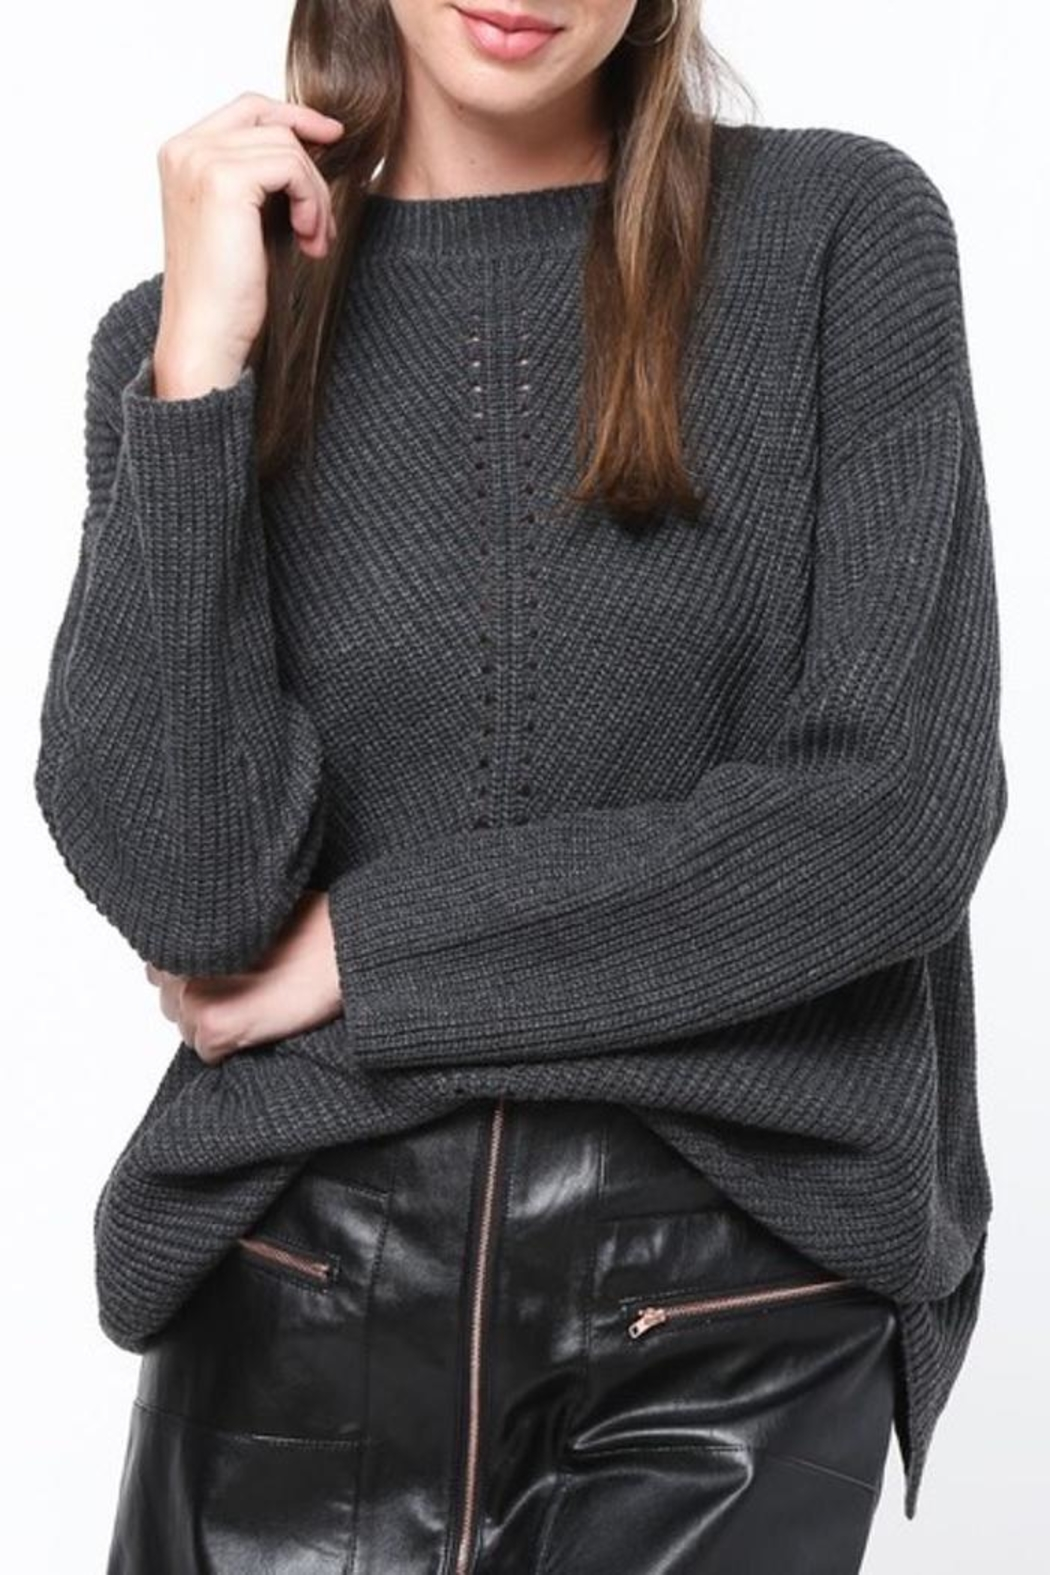 People Outfitter Lure-Me In Sweater - Front Full Image